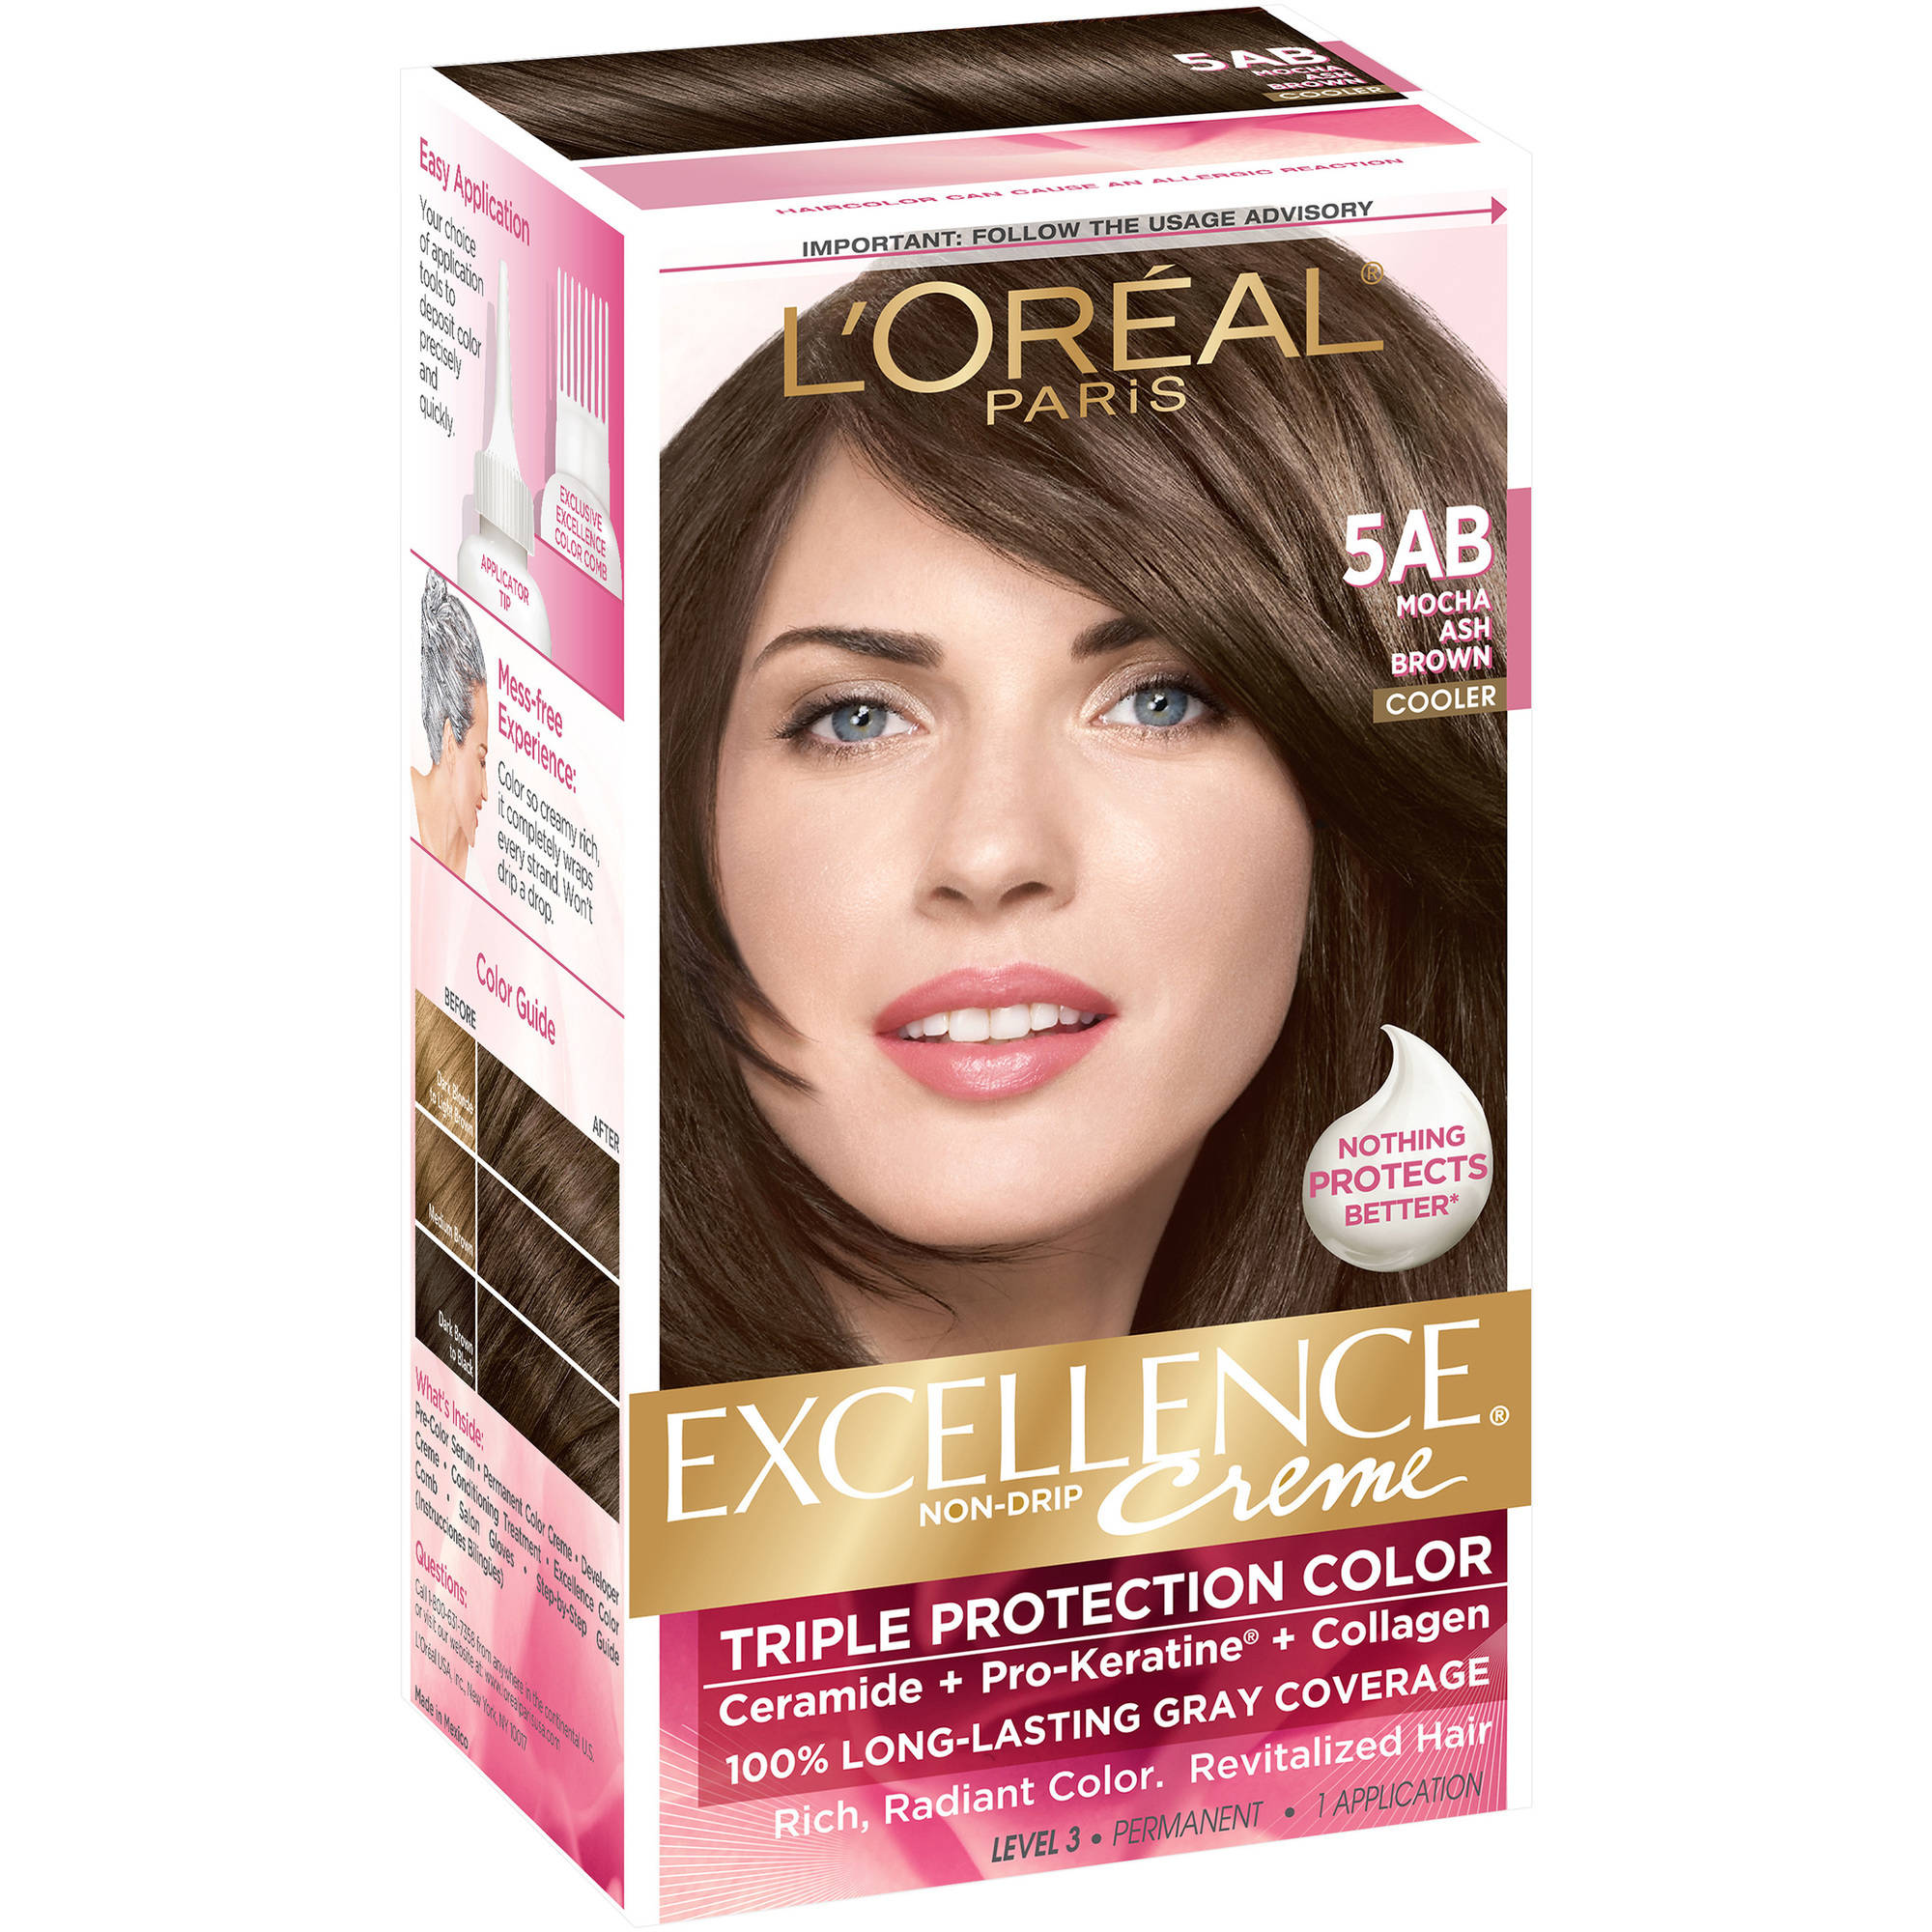 Loreal Paris Excellence Creme Hair Color 5ab Mocha Ash Brown 1